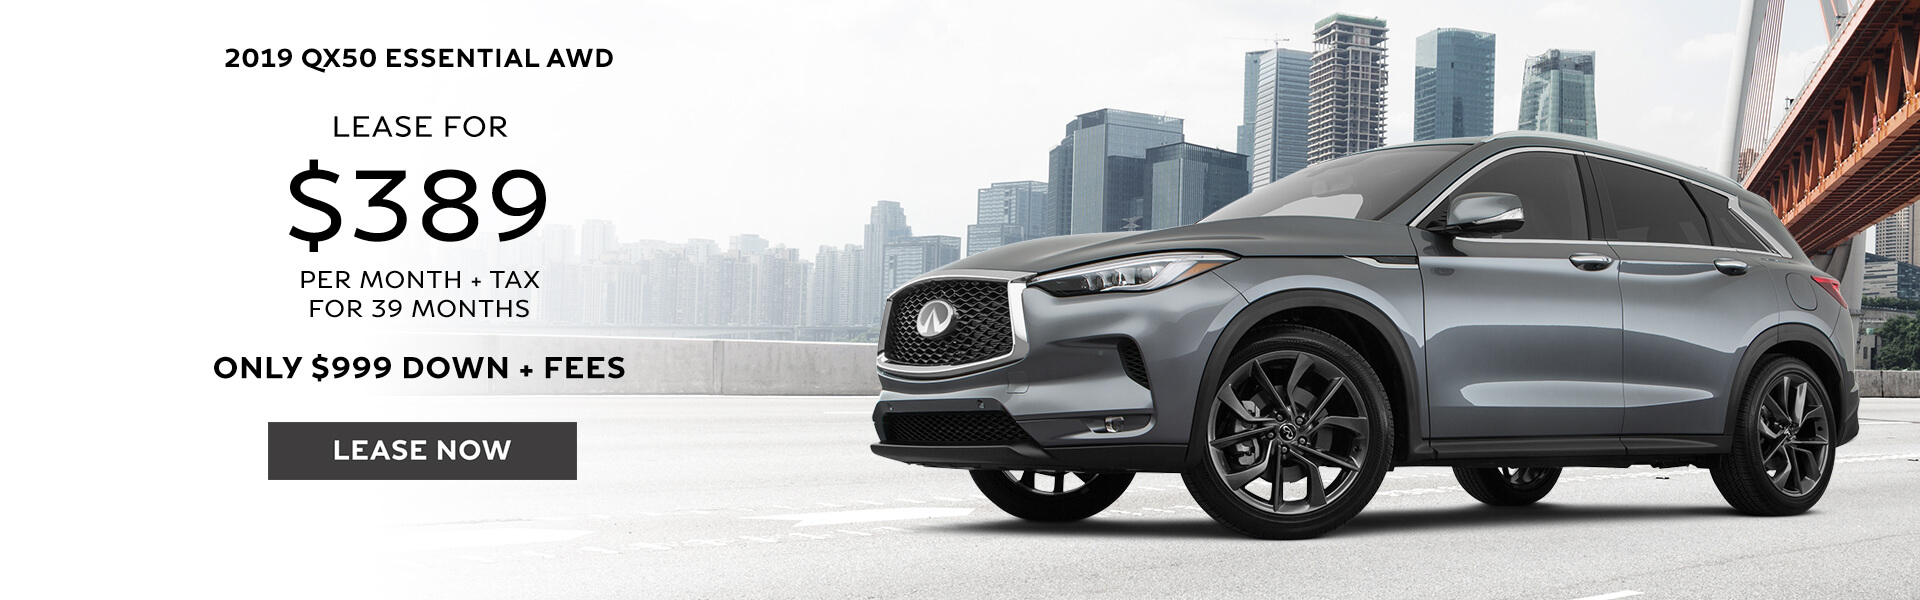 QX50 - Lease for $389